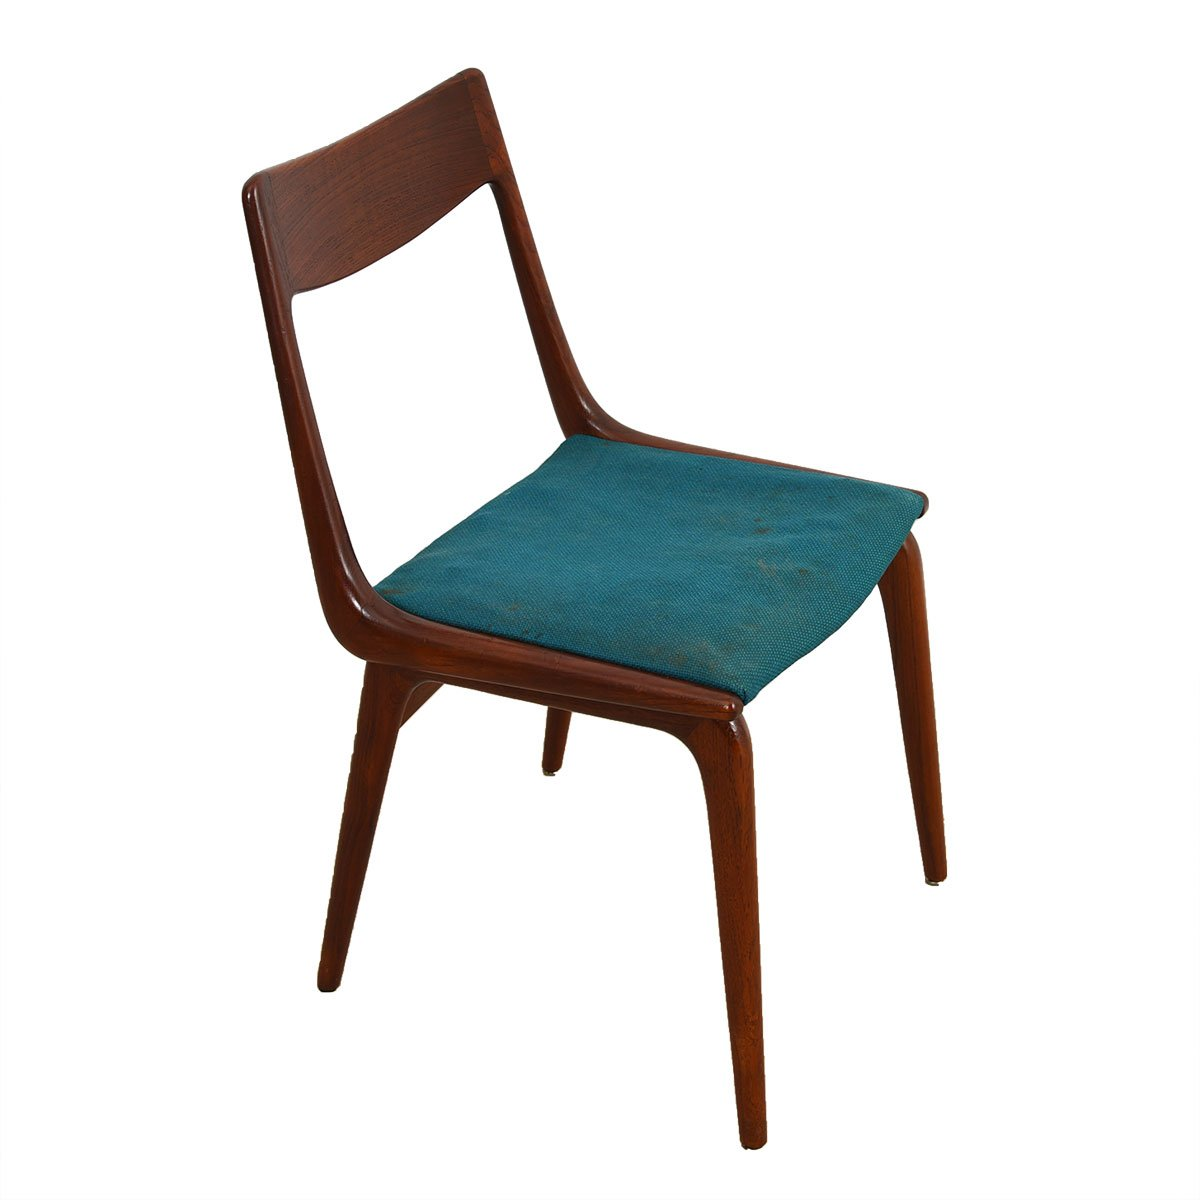 Boomerang Danish Dining Chairs – Set of 4 by Alfred Christensen.